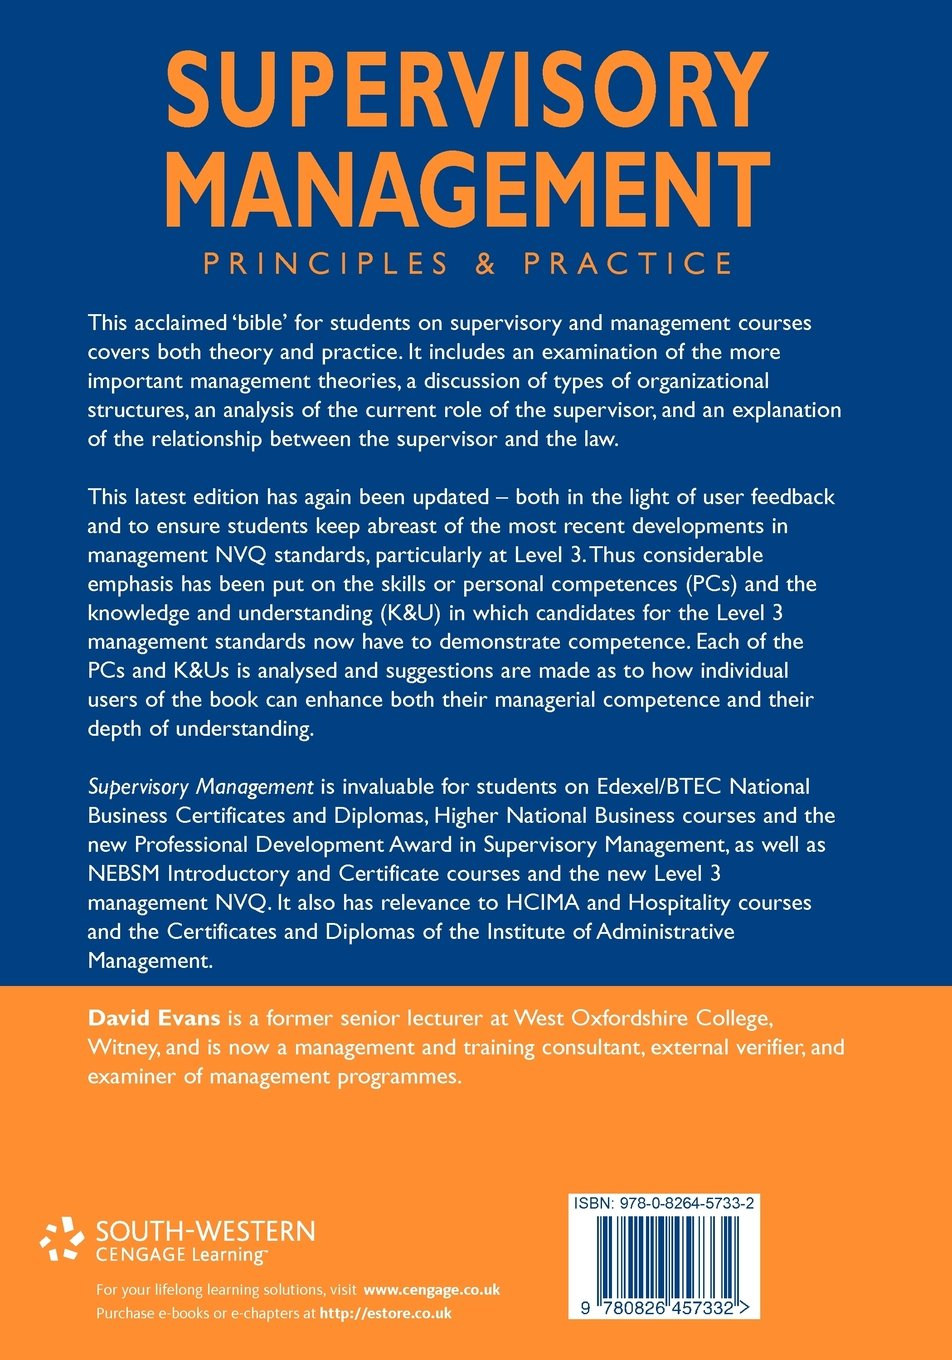 amazon supervisory management principles and practice dave